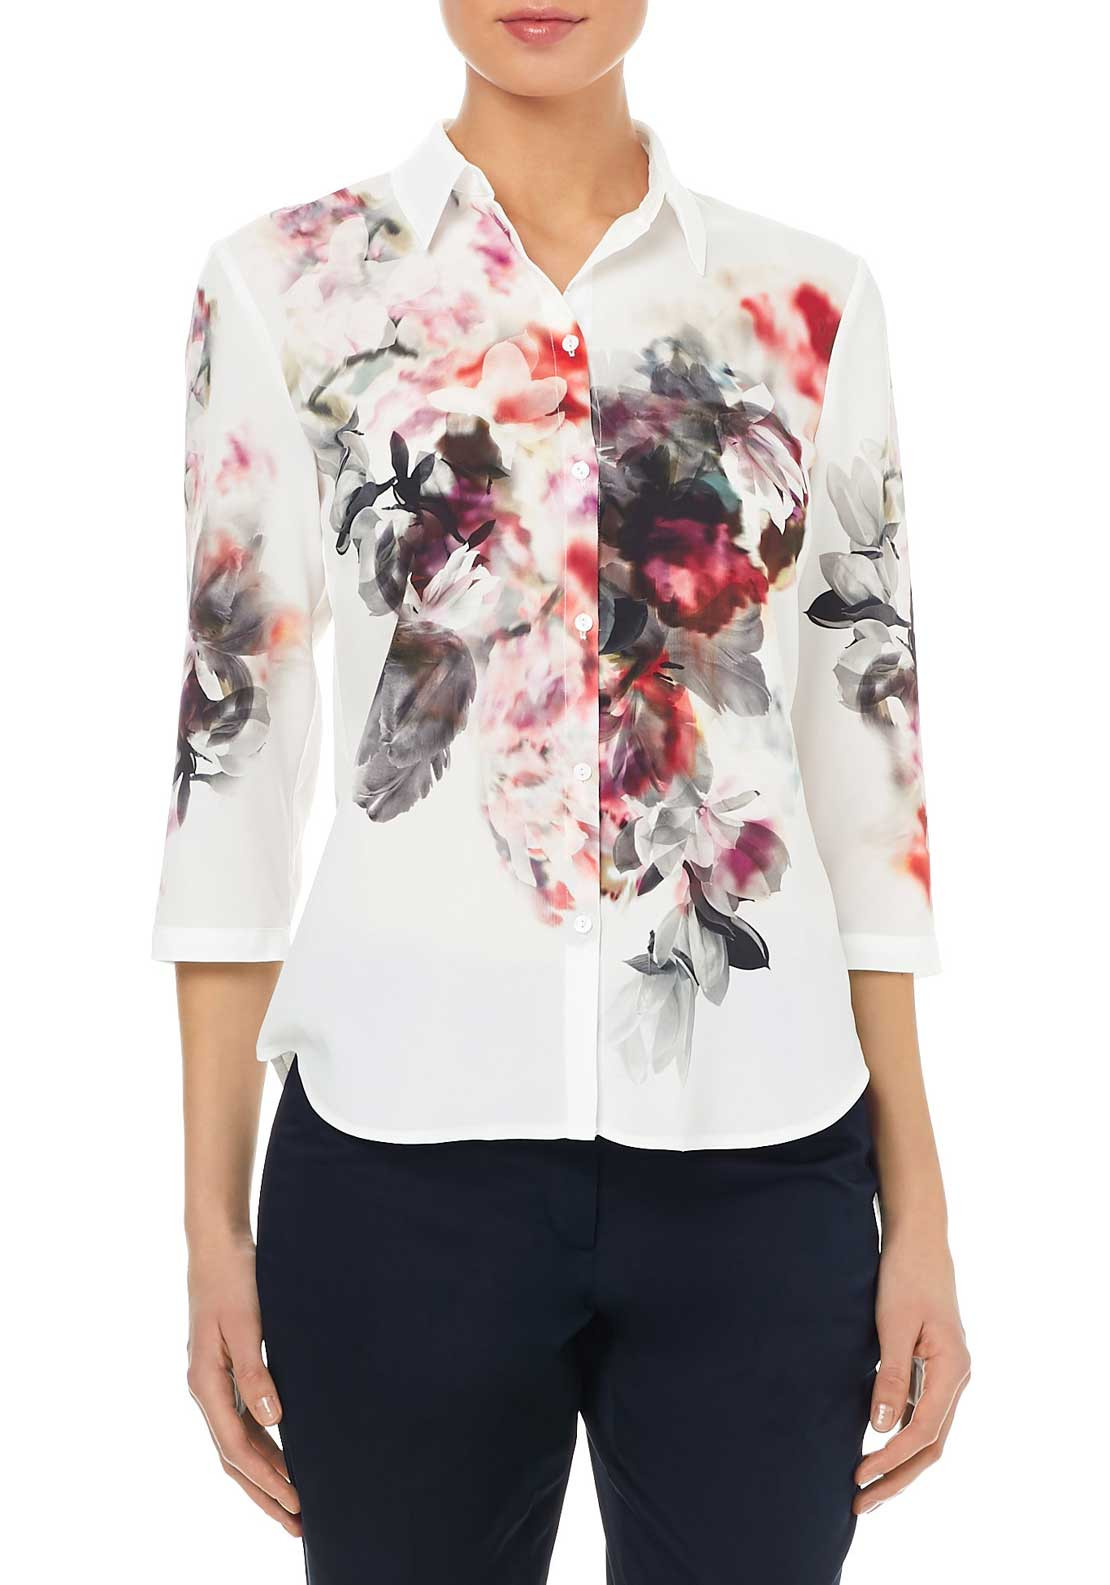 Gerry Weber Floral Print Blouse, Multi-Coloured